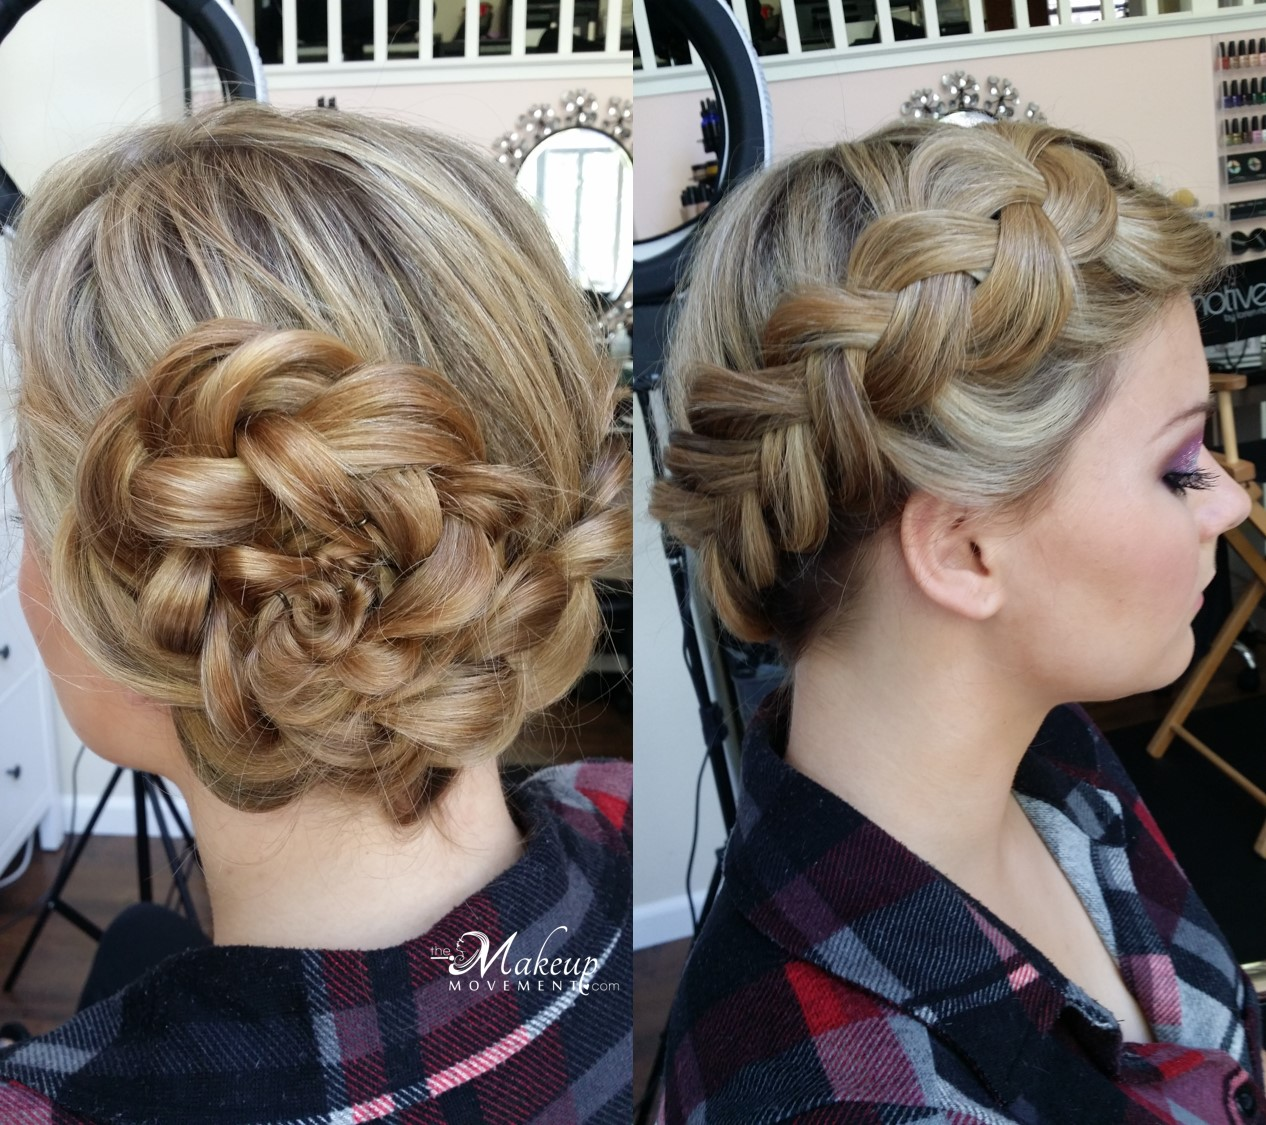 22 Dublin_Pleasanton_San_Ramon_Prom_Makeup_Hair_Floower_Braid.jpg